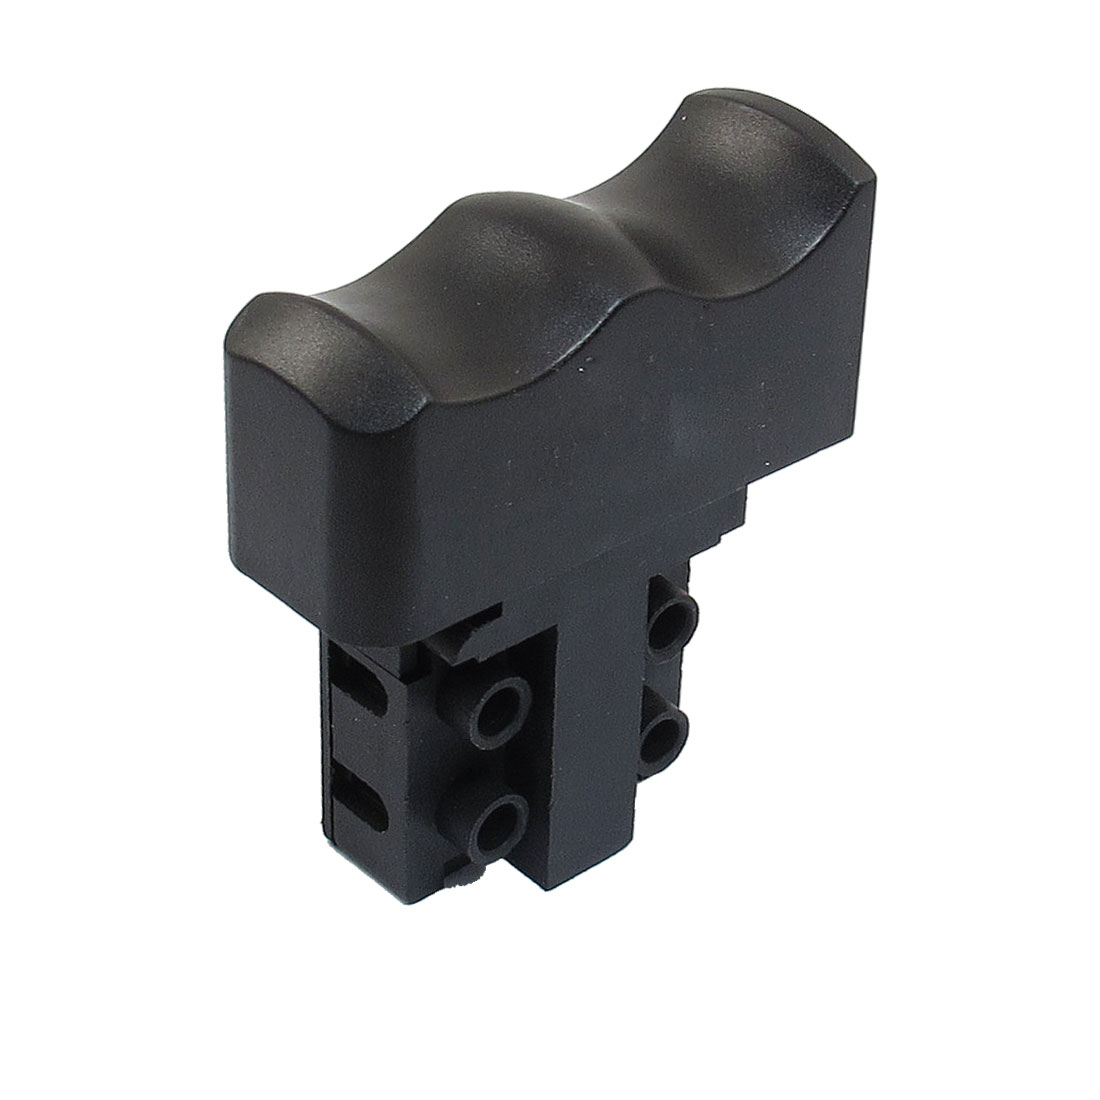 AC 250V 6A Momentary Lock On DPST Electric Power Tool Control Trigger Switch